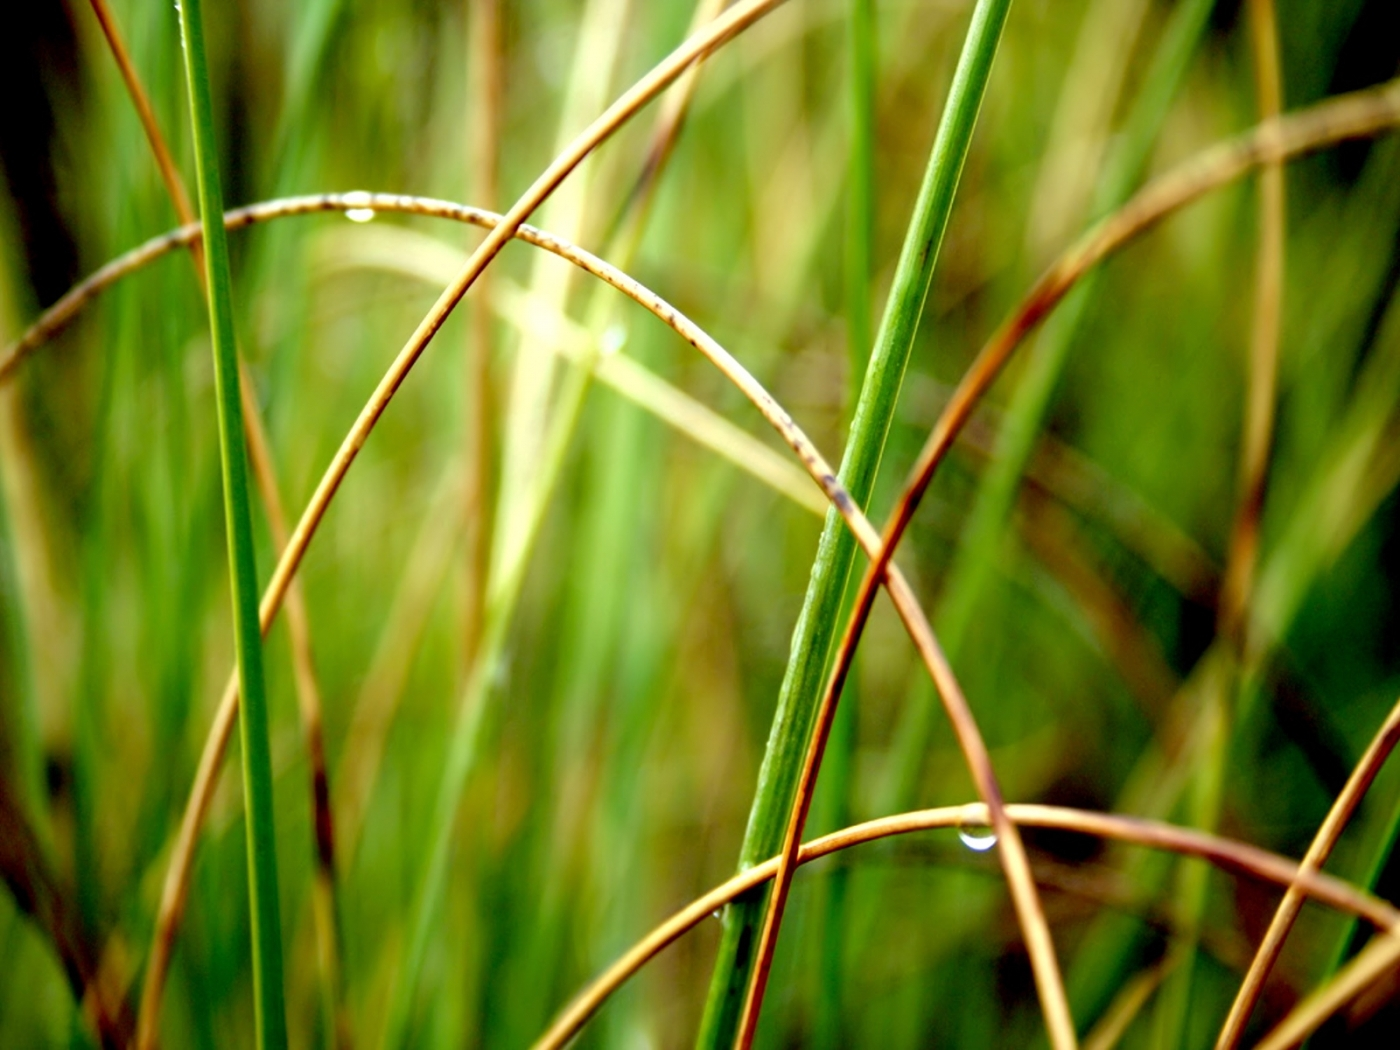 26897 download wallpaper Plants, Grass, Drops screensavers and pictures for free